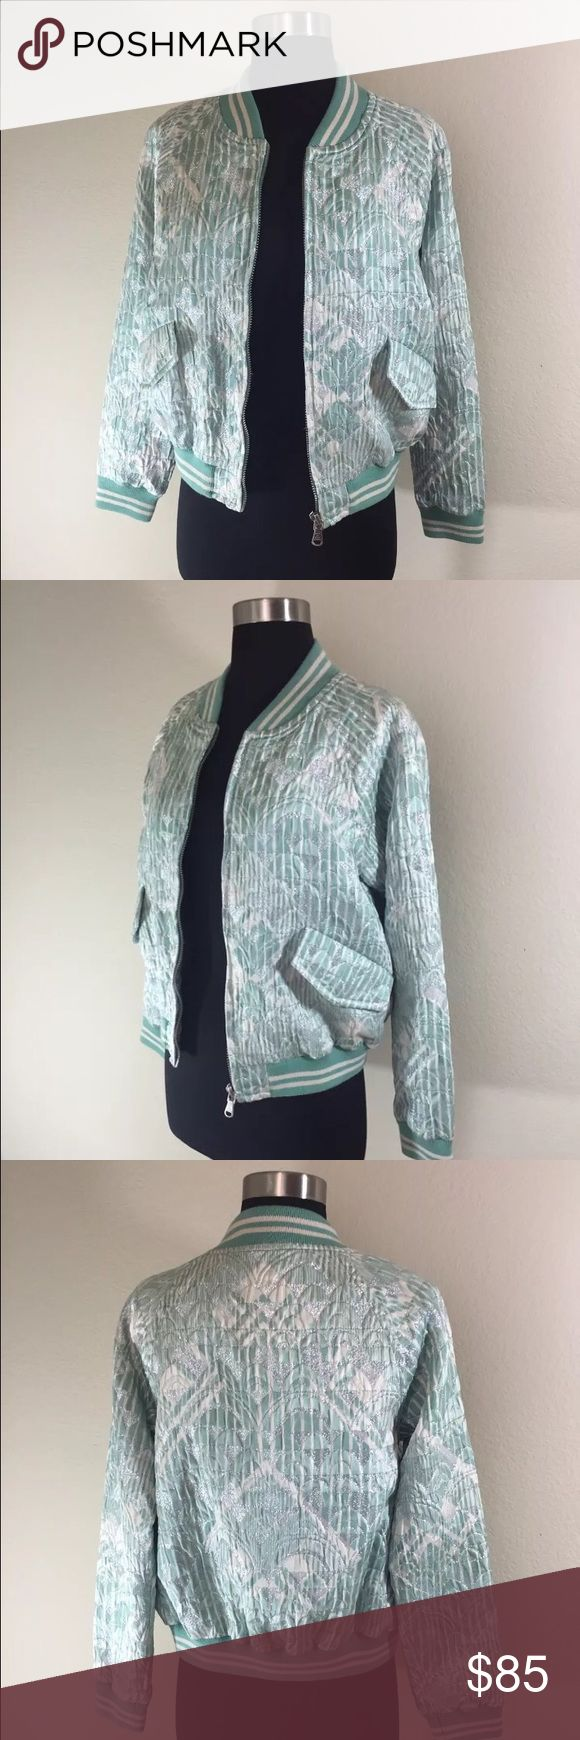 Marc by Marc Jacobs Matelasse Bomber Jacket Mint green and cream floral print with athletic style elastic waistband. Floral print has metallic/silver sheen effect. Silver hardware. Excellent pre-owned condition. Lightly worn. Marc by Marc Jacobs Jackets & Coats